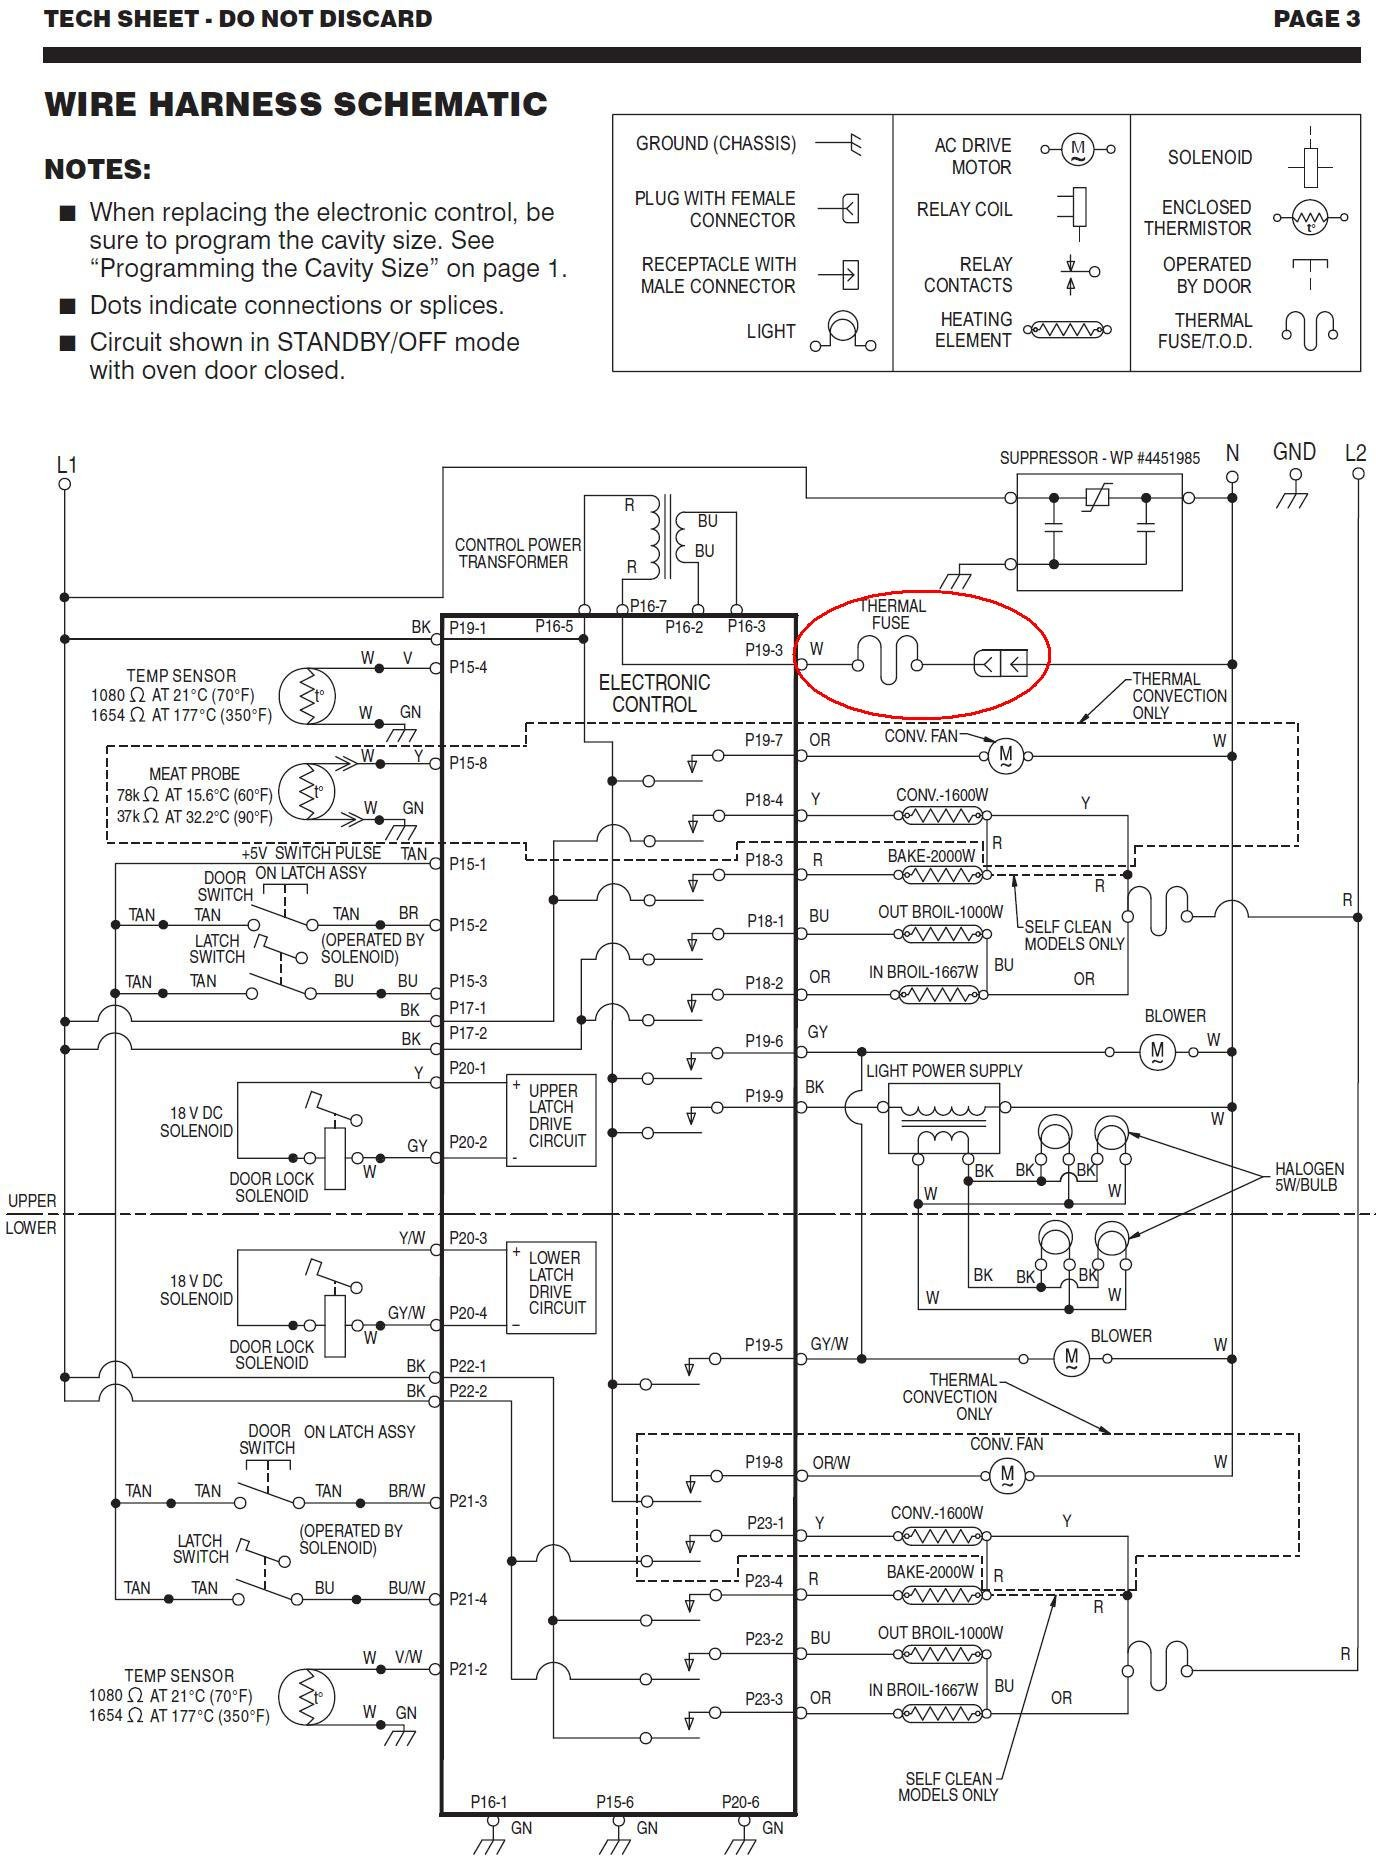 P15 Wiring Diagram Plymouth Volare Diagrams Model Kebckss Kitchenaid Double Wall Oven Problem Started Graphic V Coil